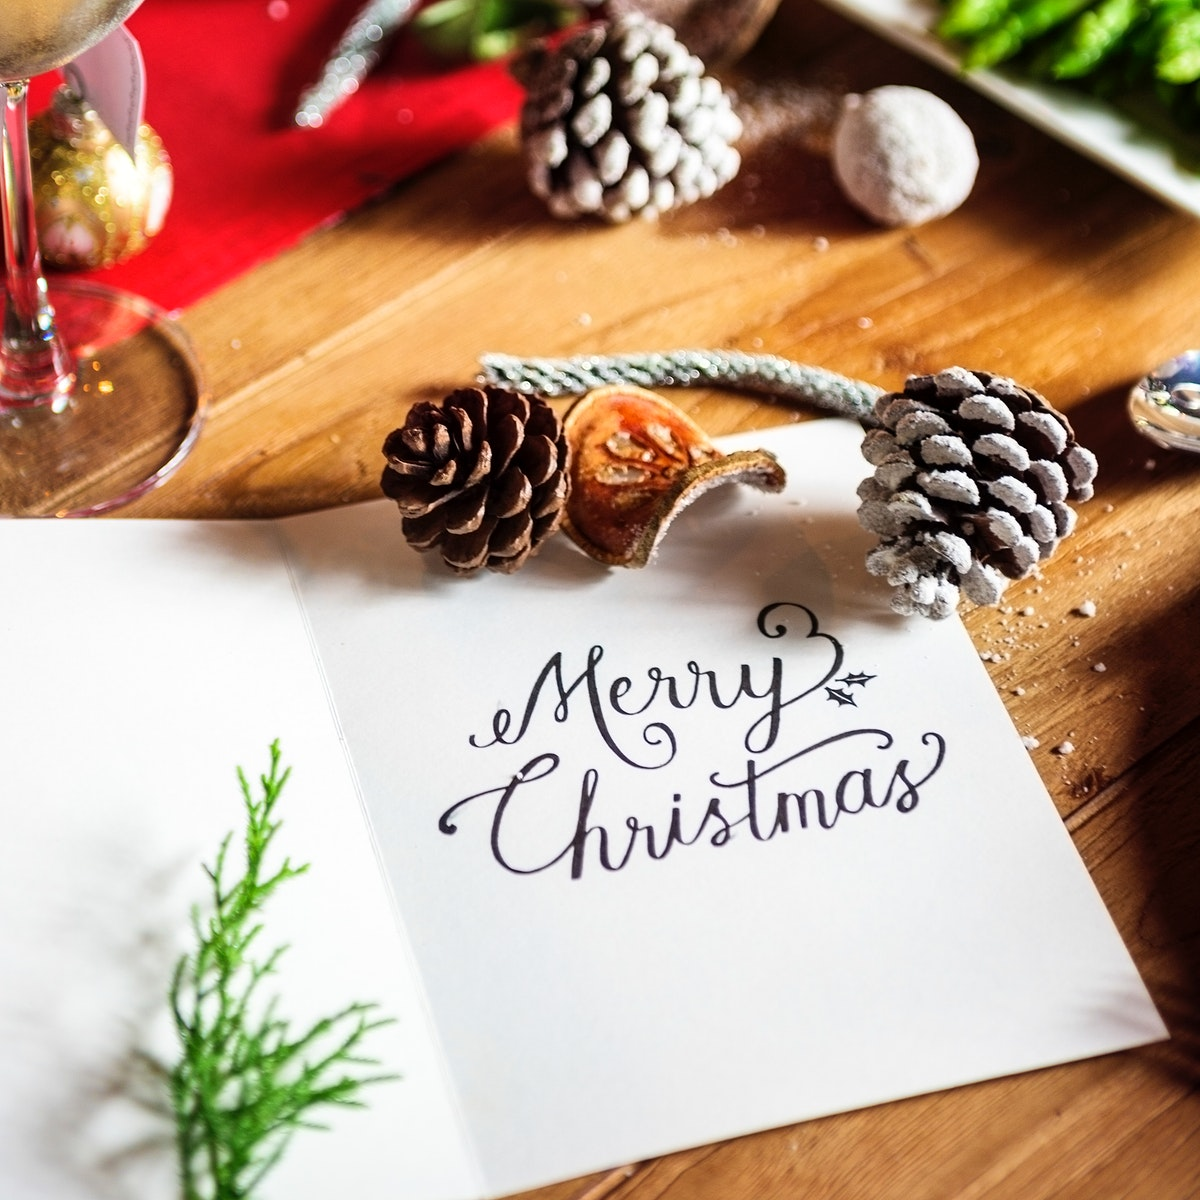 Merry christmas word card on wooden table holiday celebration